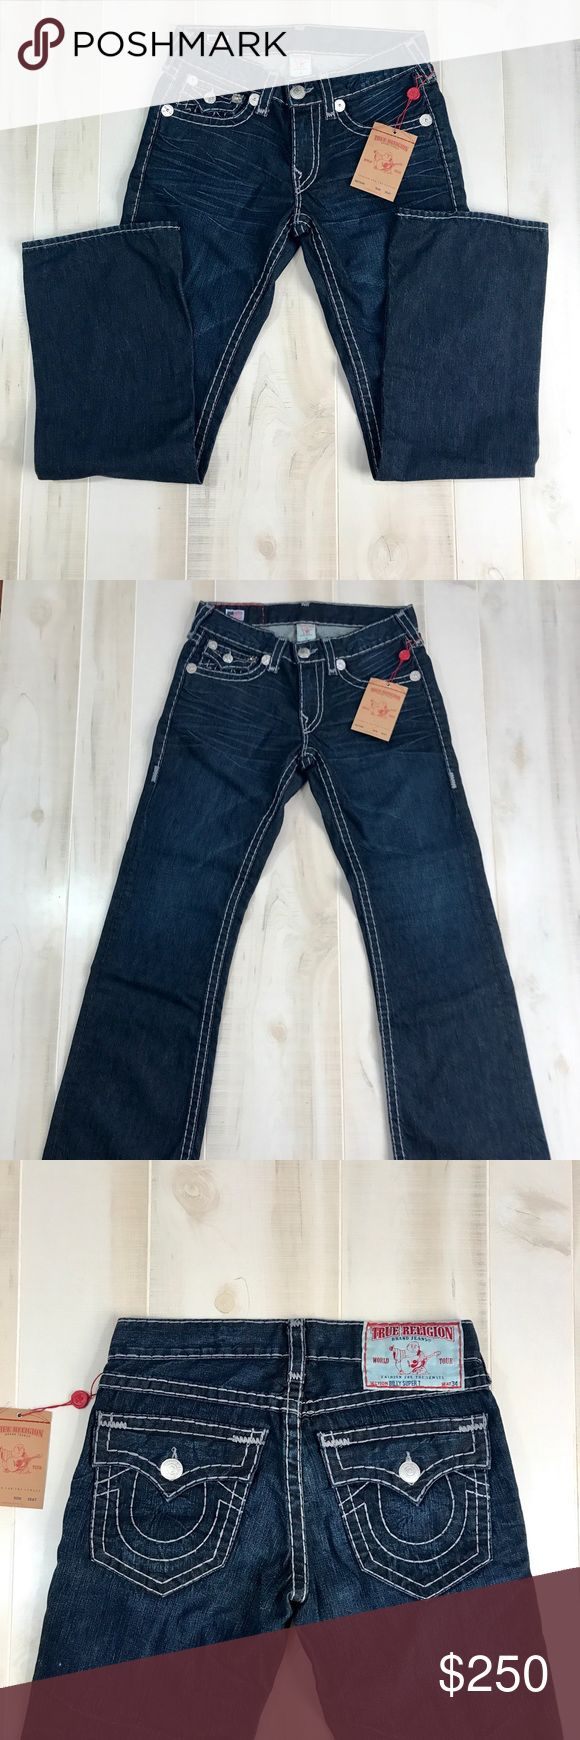 """🎉HP🎉Men's True Religion 32 x 34 Bootcut Jeans Men's True Religion 32 x 34 Billy Super T Bootcut Jeans. I consider all reasonable offers made through the """"offer"""" feature. No trades. True Religion Jeans Bootcut"""